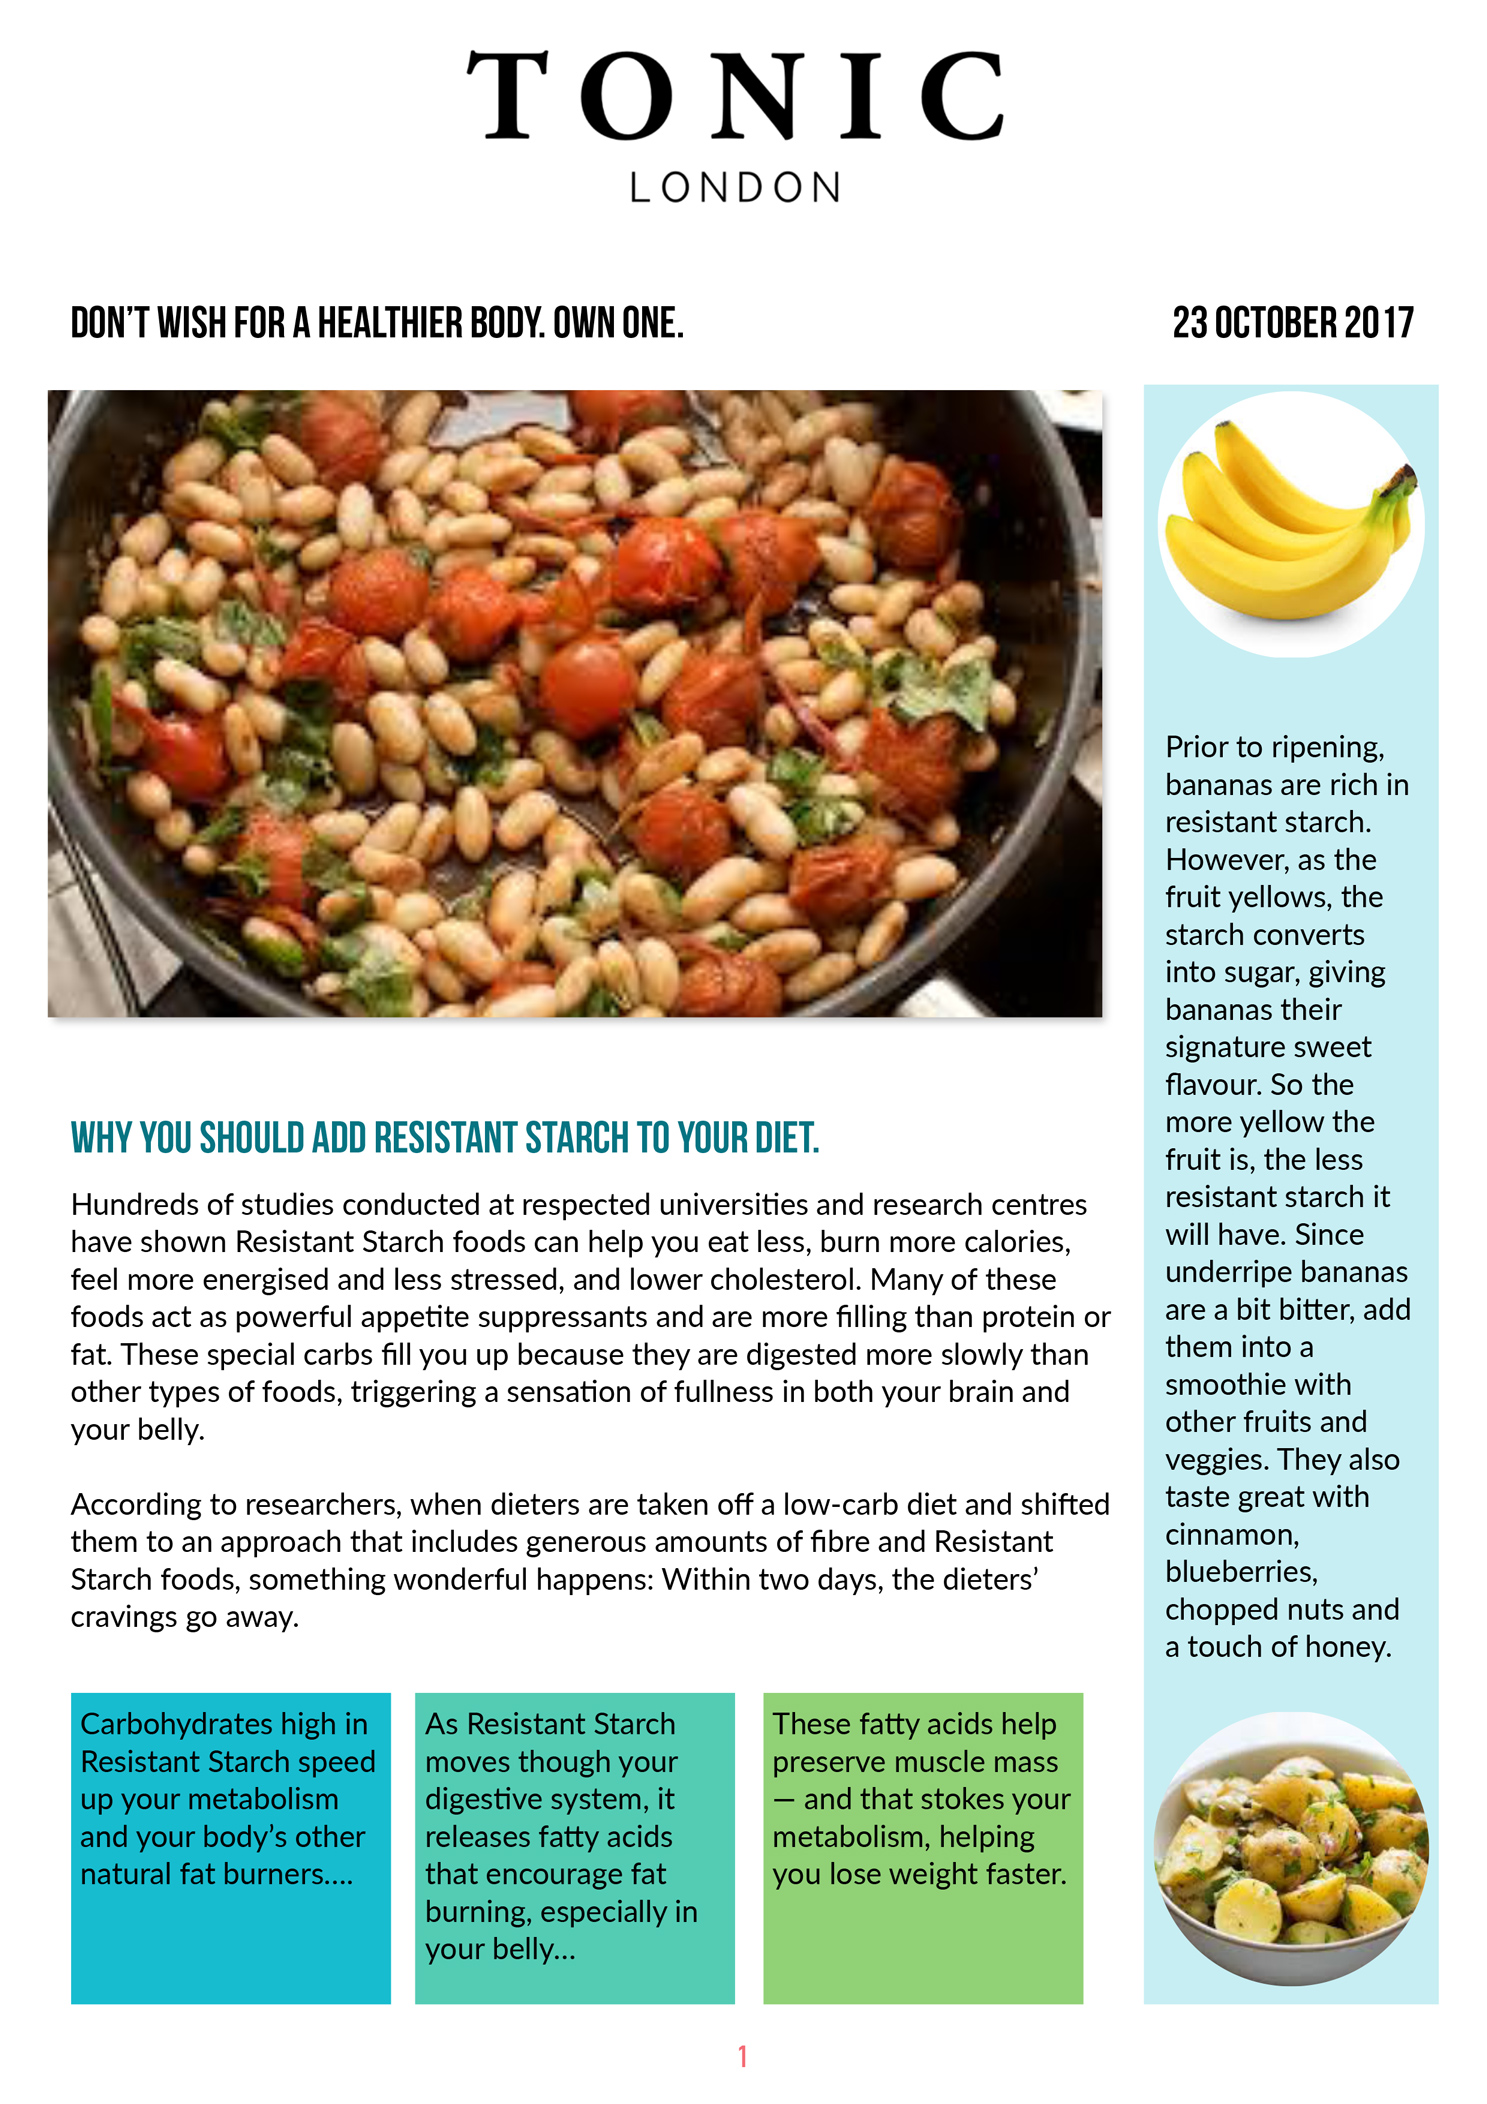 Tonic-newsletter-23rd-October-2017-Why-you-should-add-resistant-starch-to-your-diet--Page-1